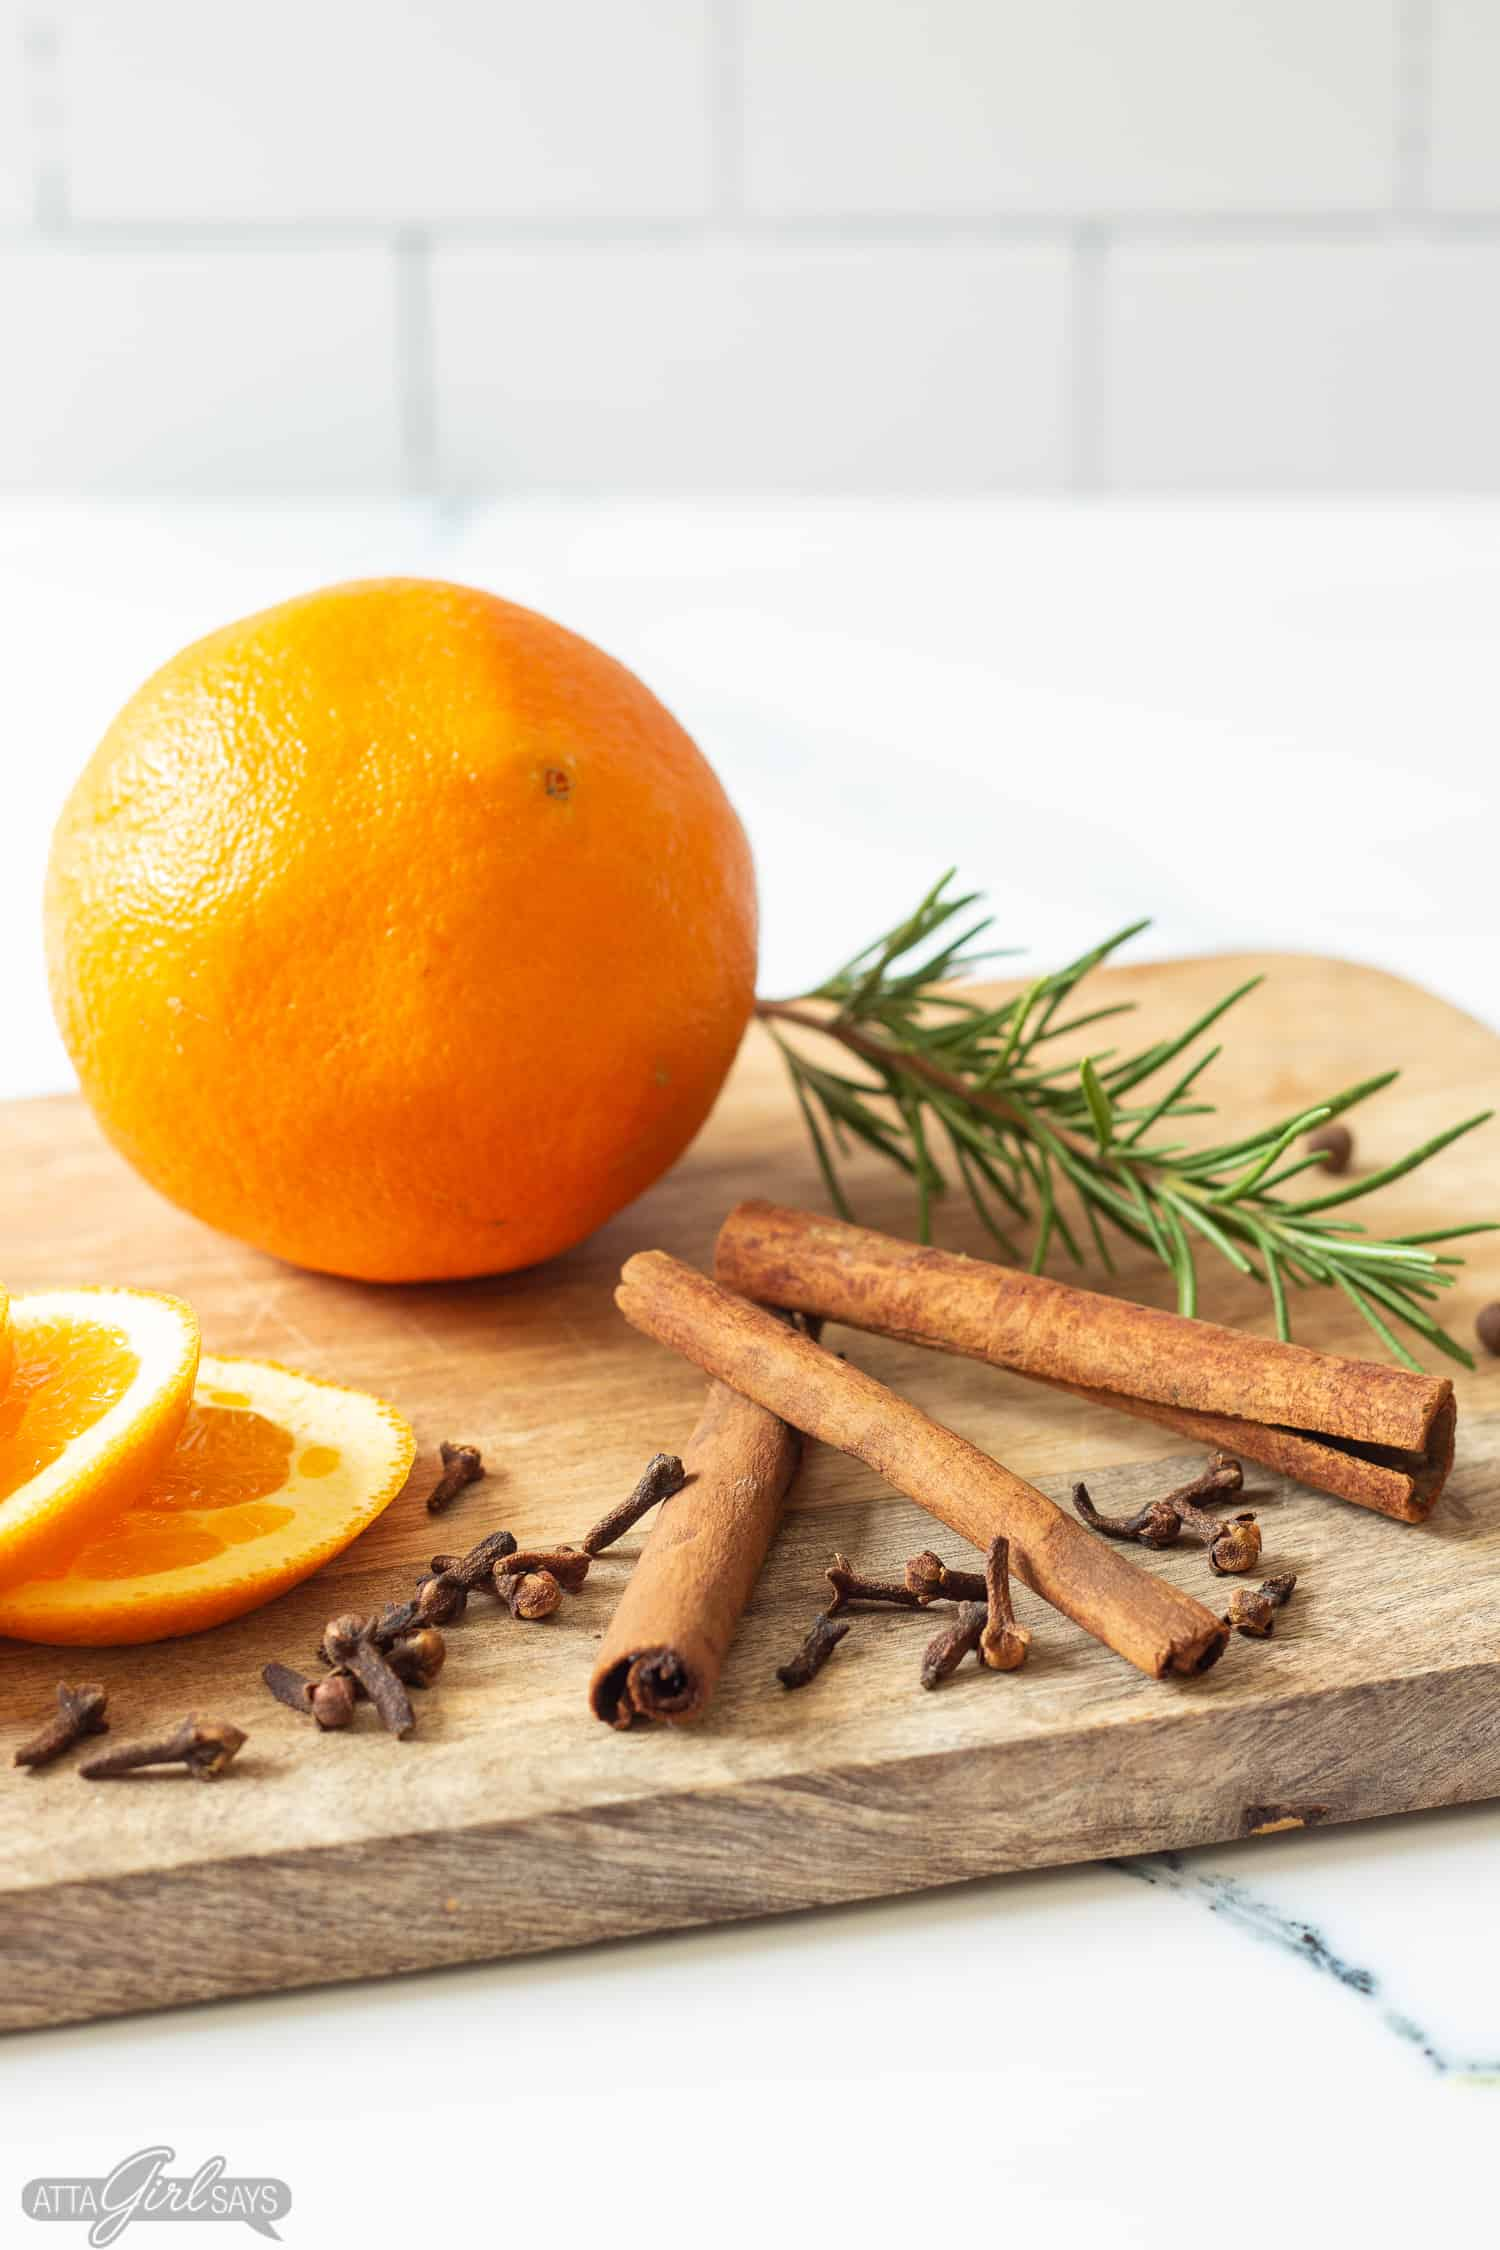 oranges, cinnamon sticks, spices and rosemary on a cutting board